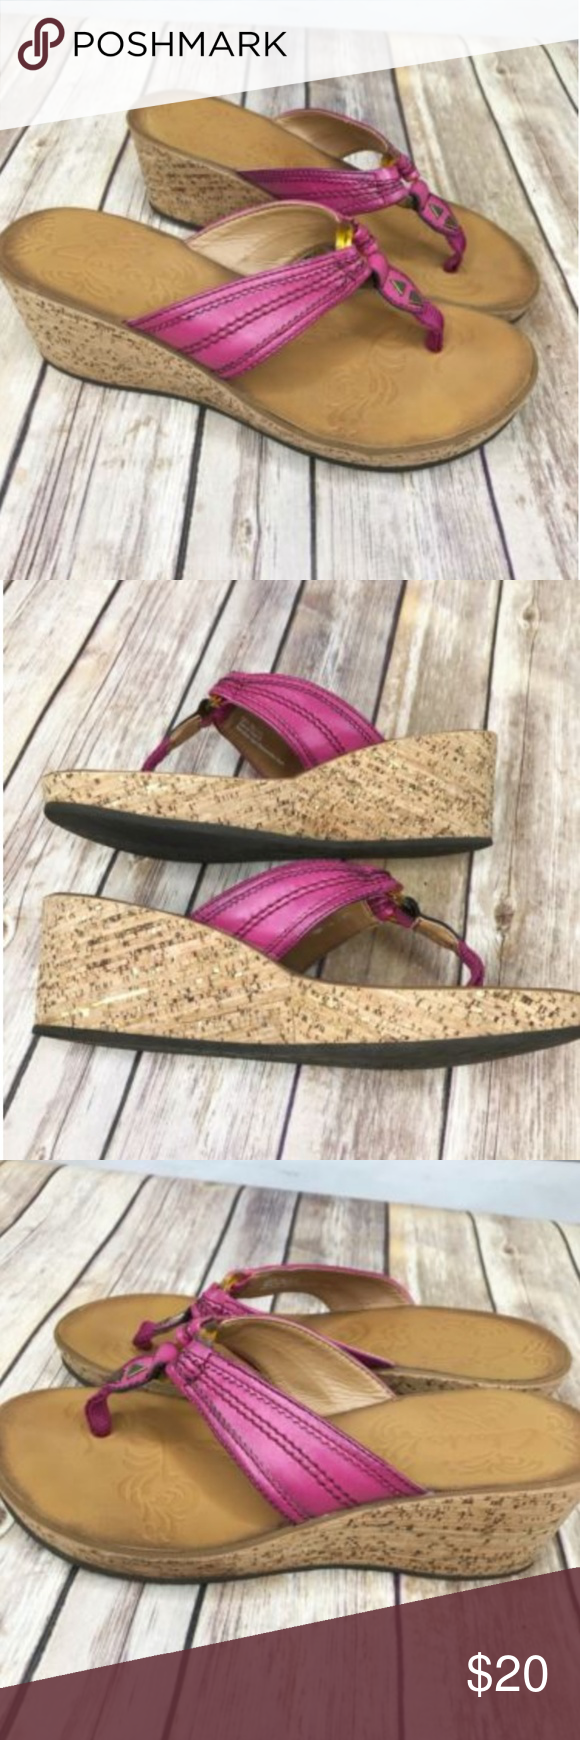 8410a243be7 Clarks Pink Slide On Cork Wedge Sandals Vegan Clarks Womens Vegan Synthetic  Pink Ring Detail Slide On Wedge Sandals 7M great condition